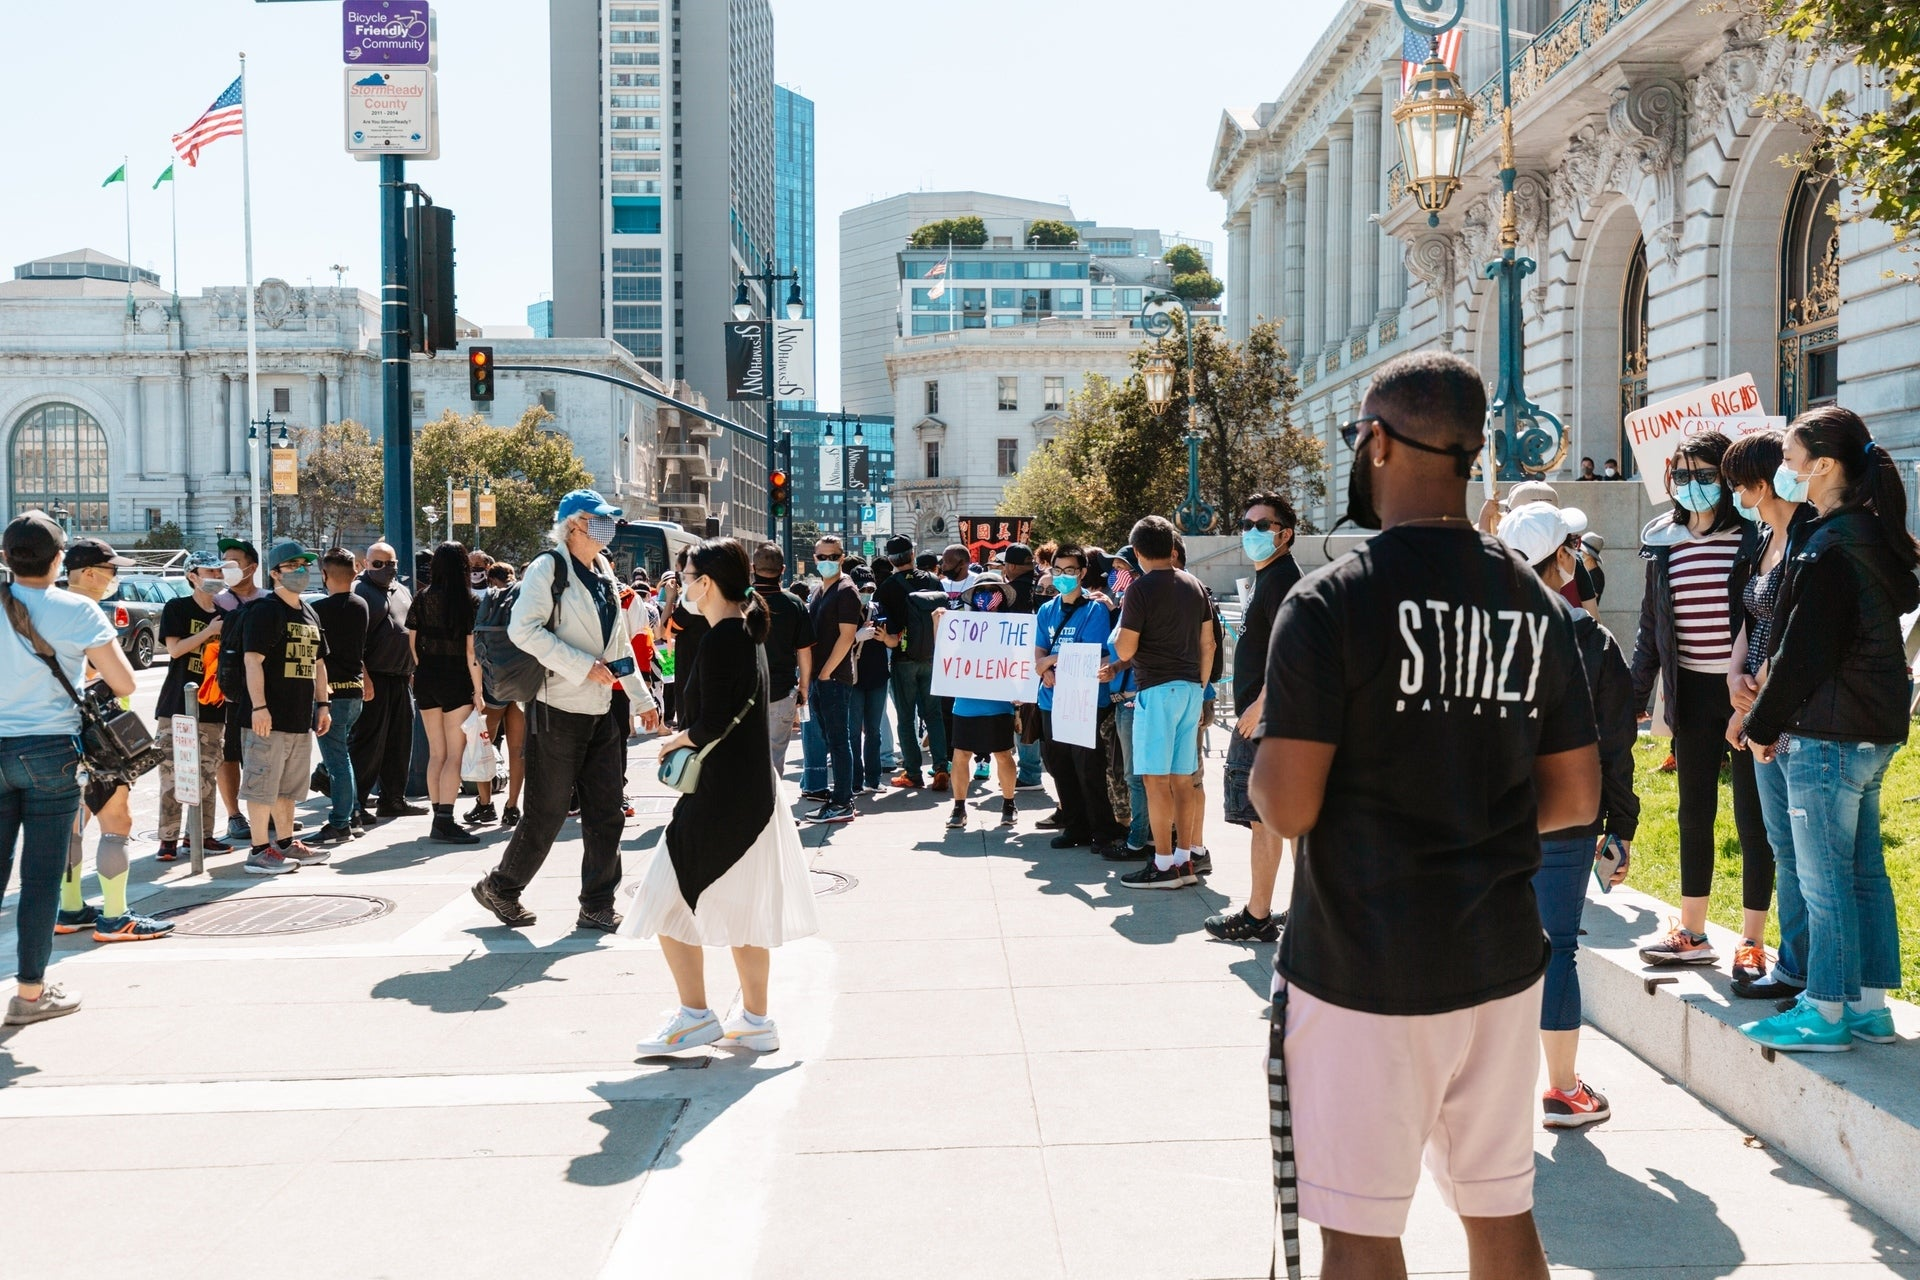 'THEY CAN'T BURN US ALL' ANTI-RACISM RALLY IN SAN FRANCISCO